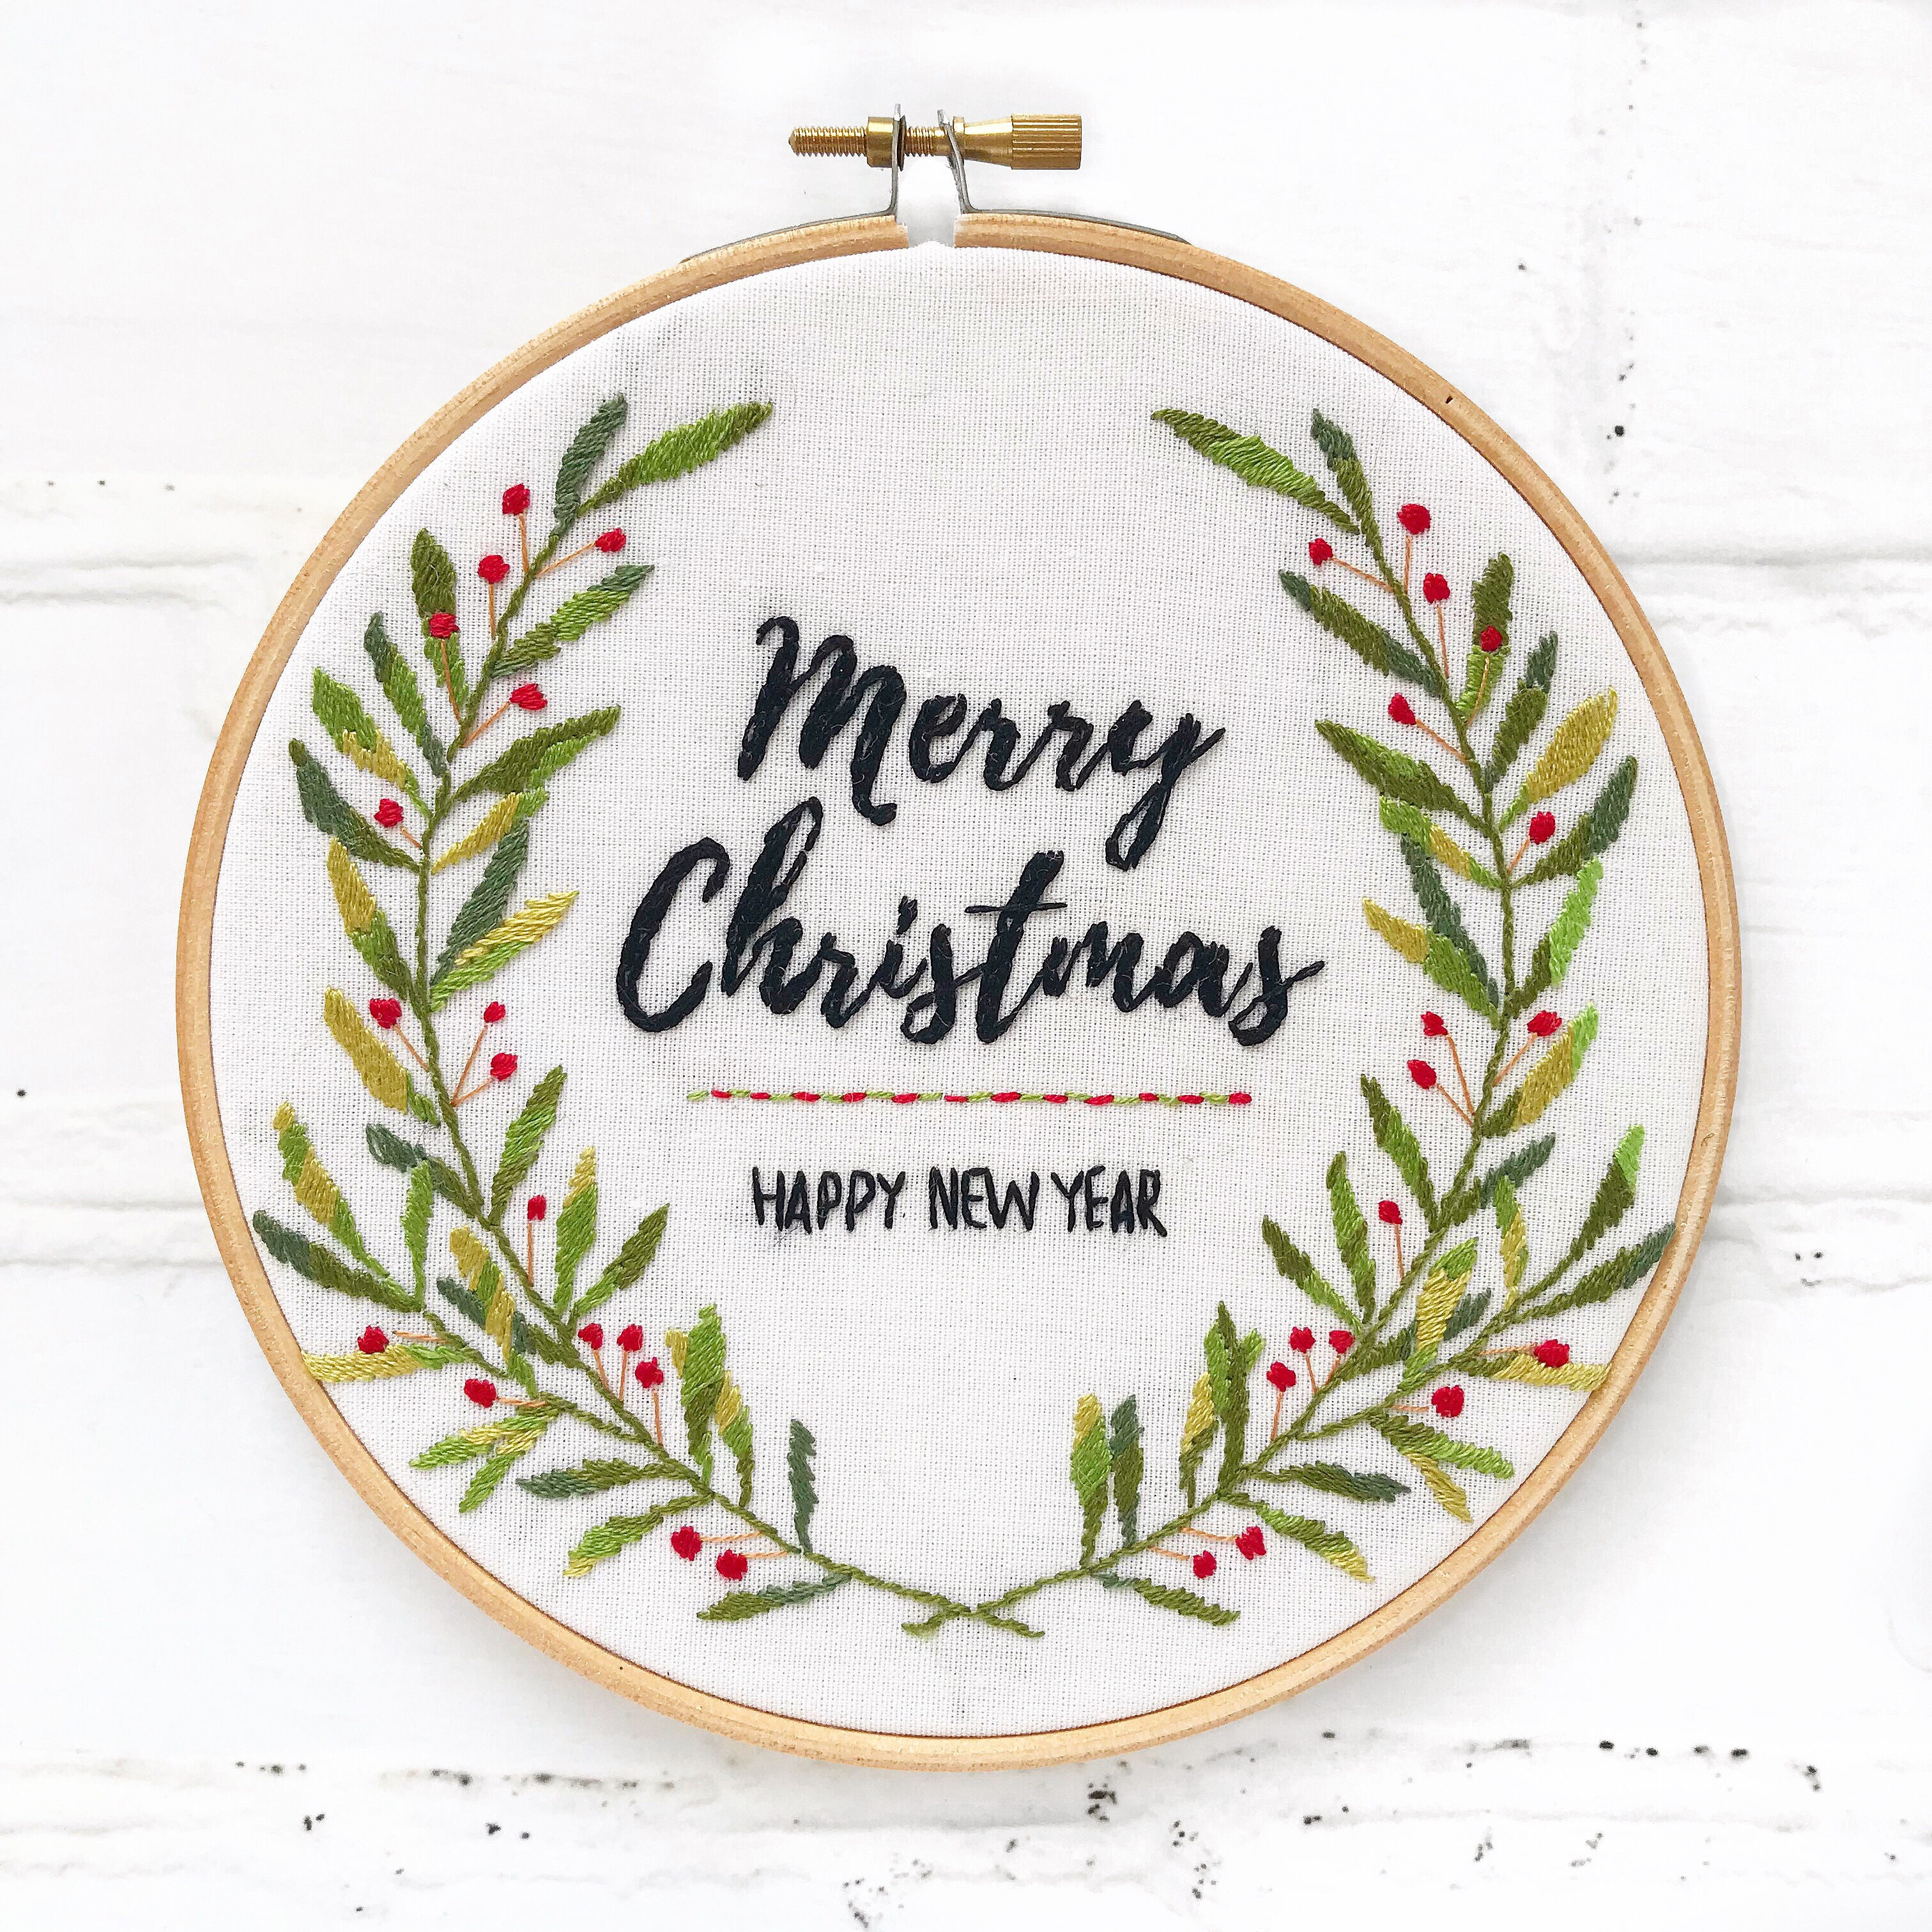 Hand Embroidery Christmas Patterns Merry Christmas Hand Embroidery Hoop Bustle Sew